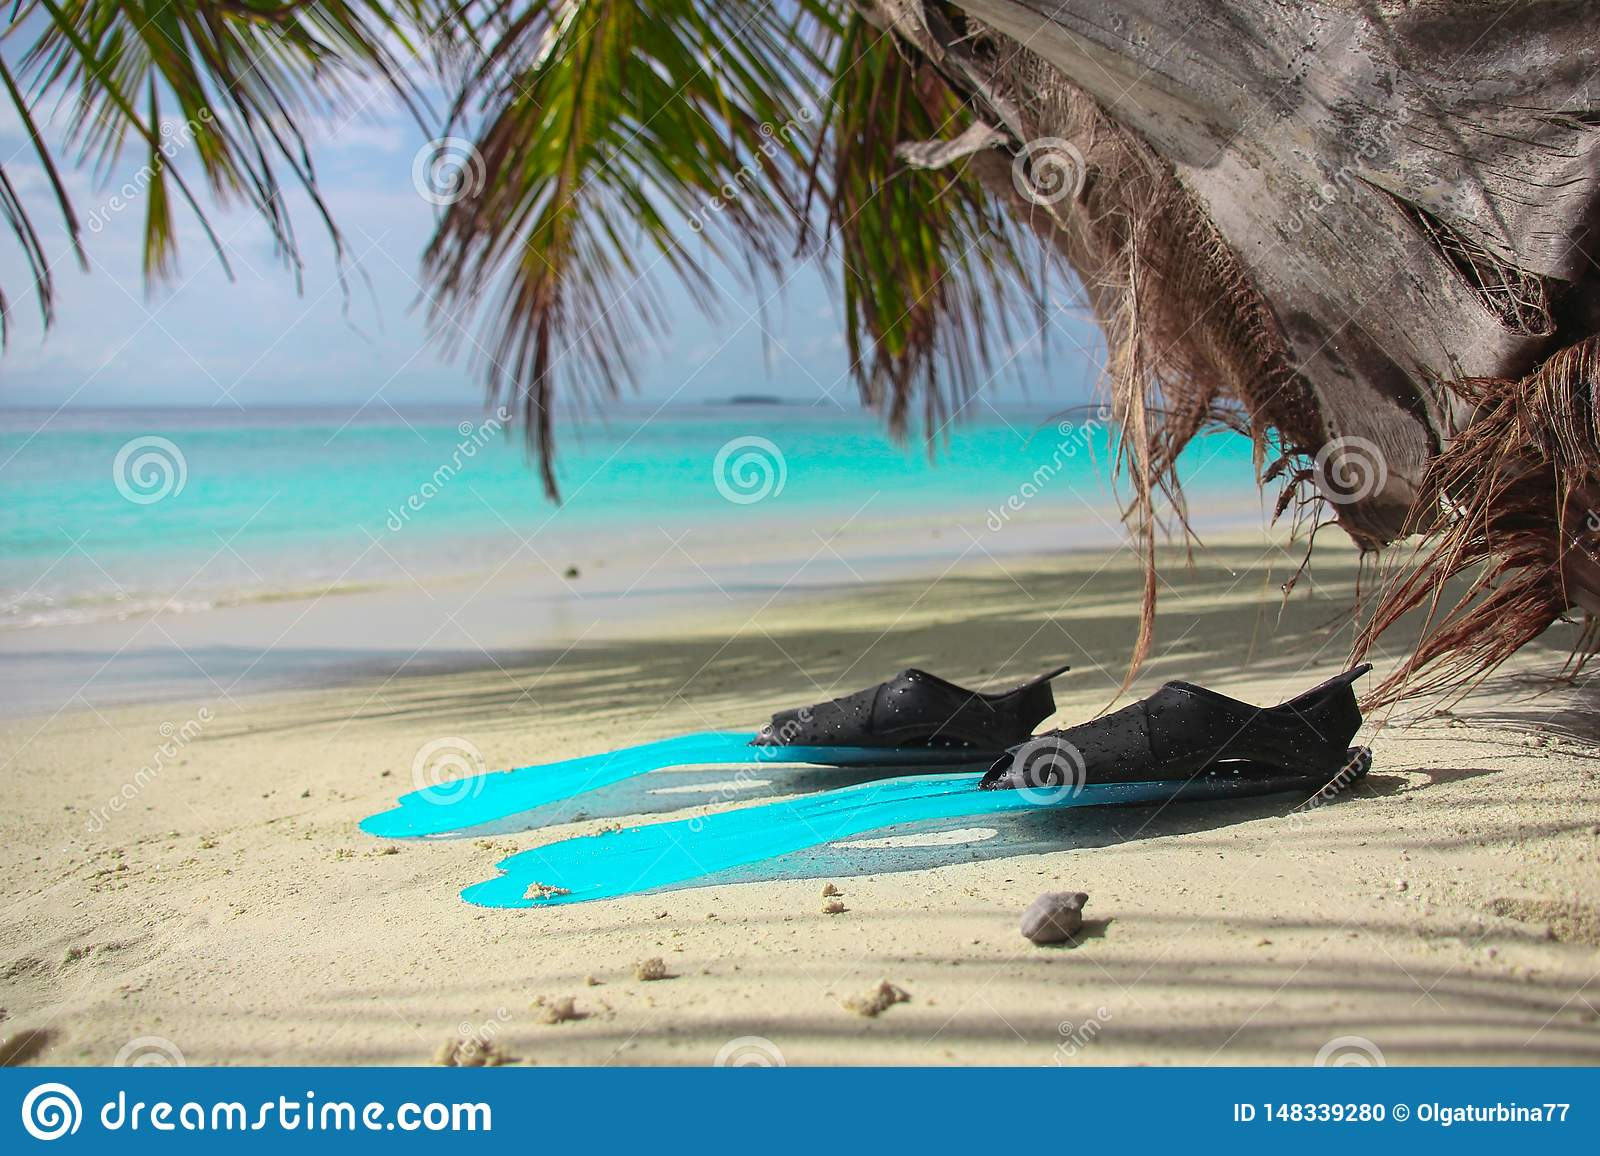 Turquoise blue flippers close up lie on the shore of a tropical island with white sand, in blue lagoon.